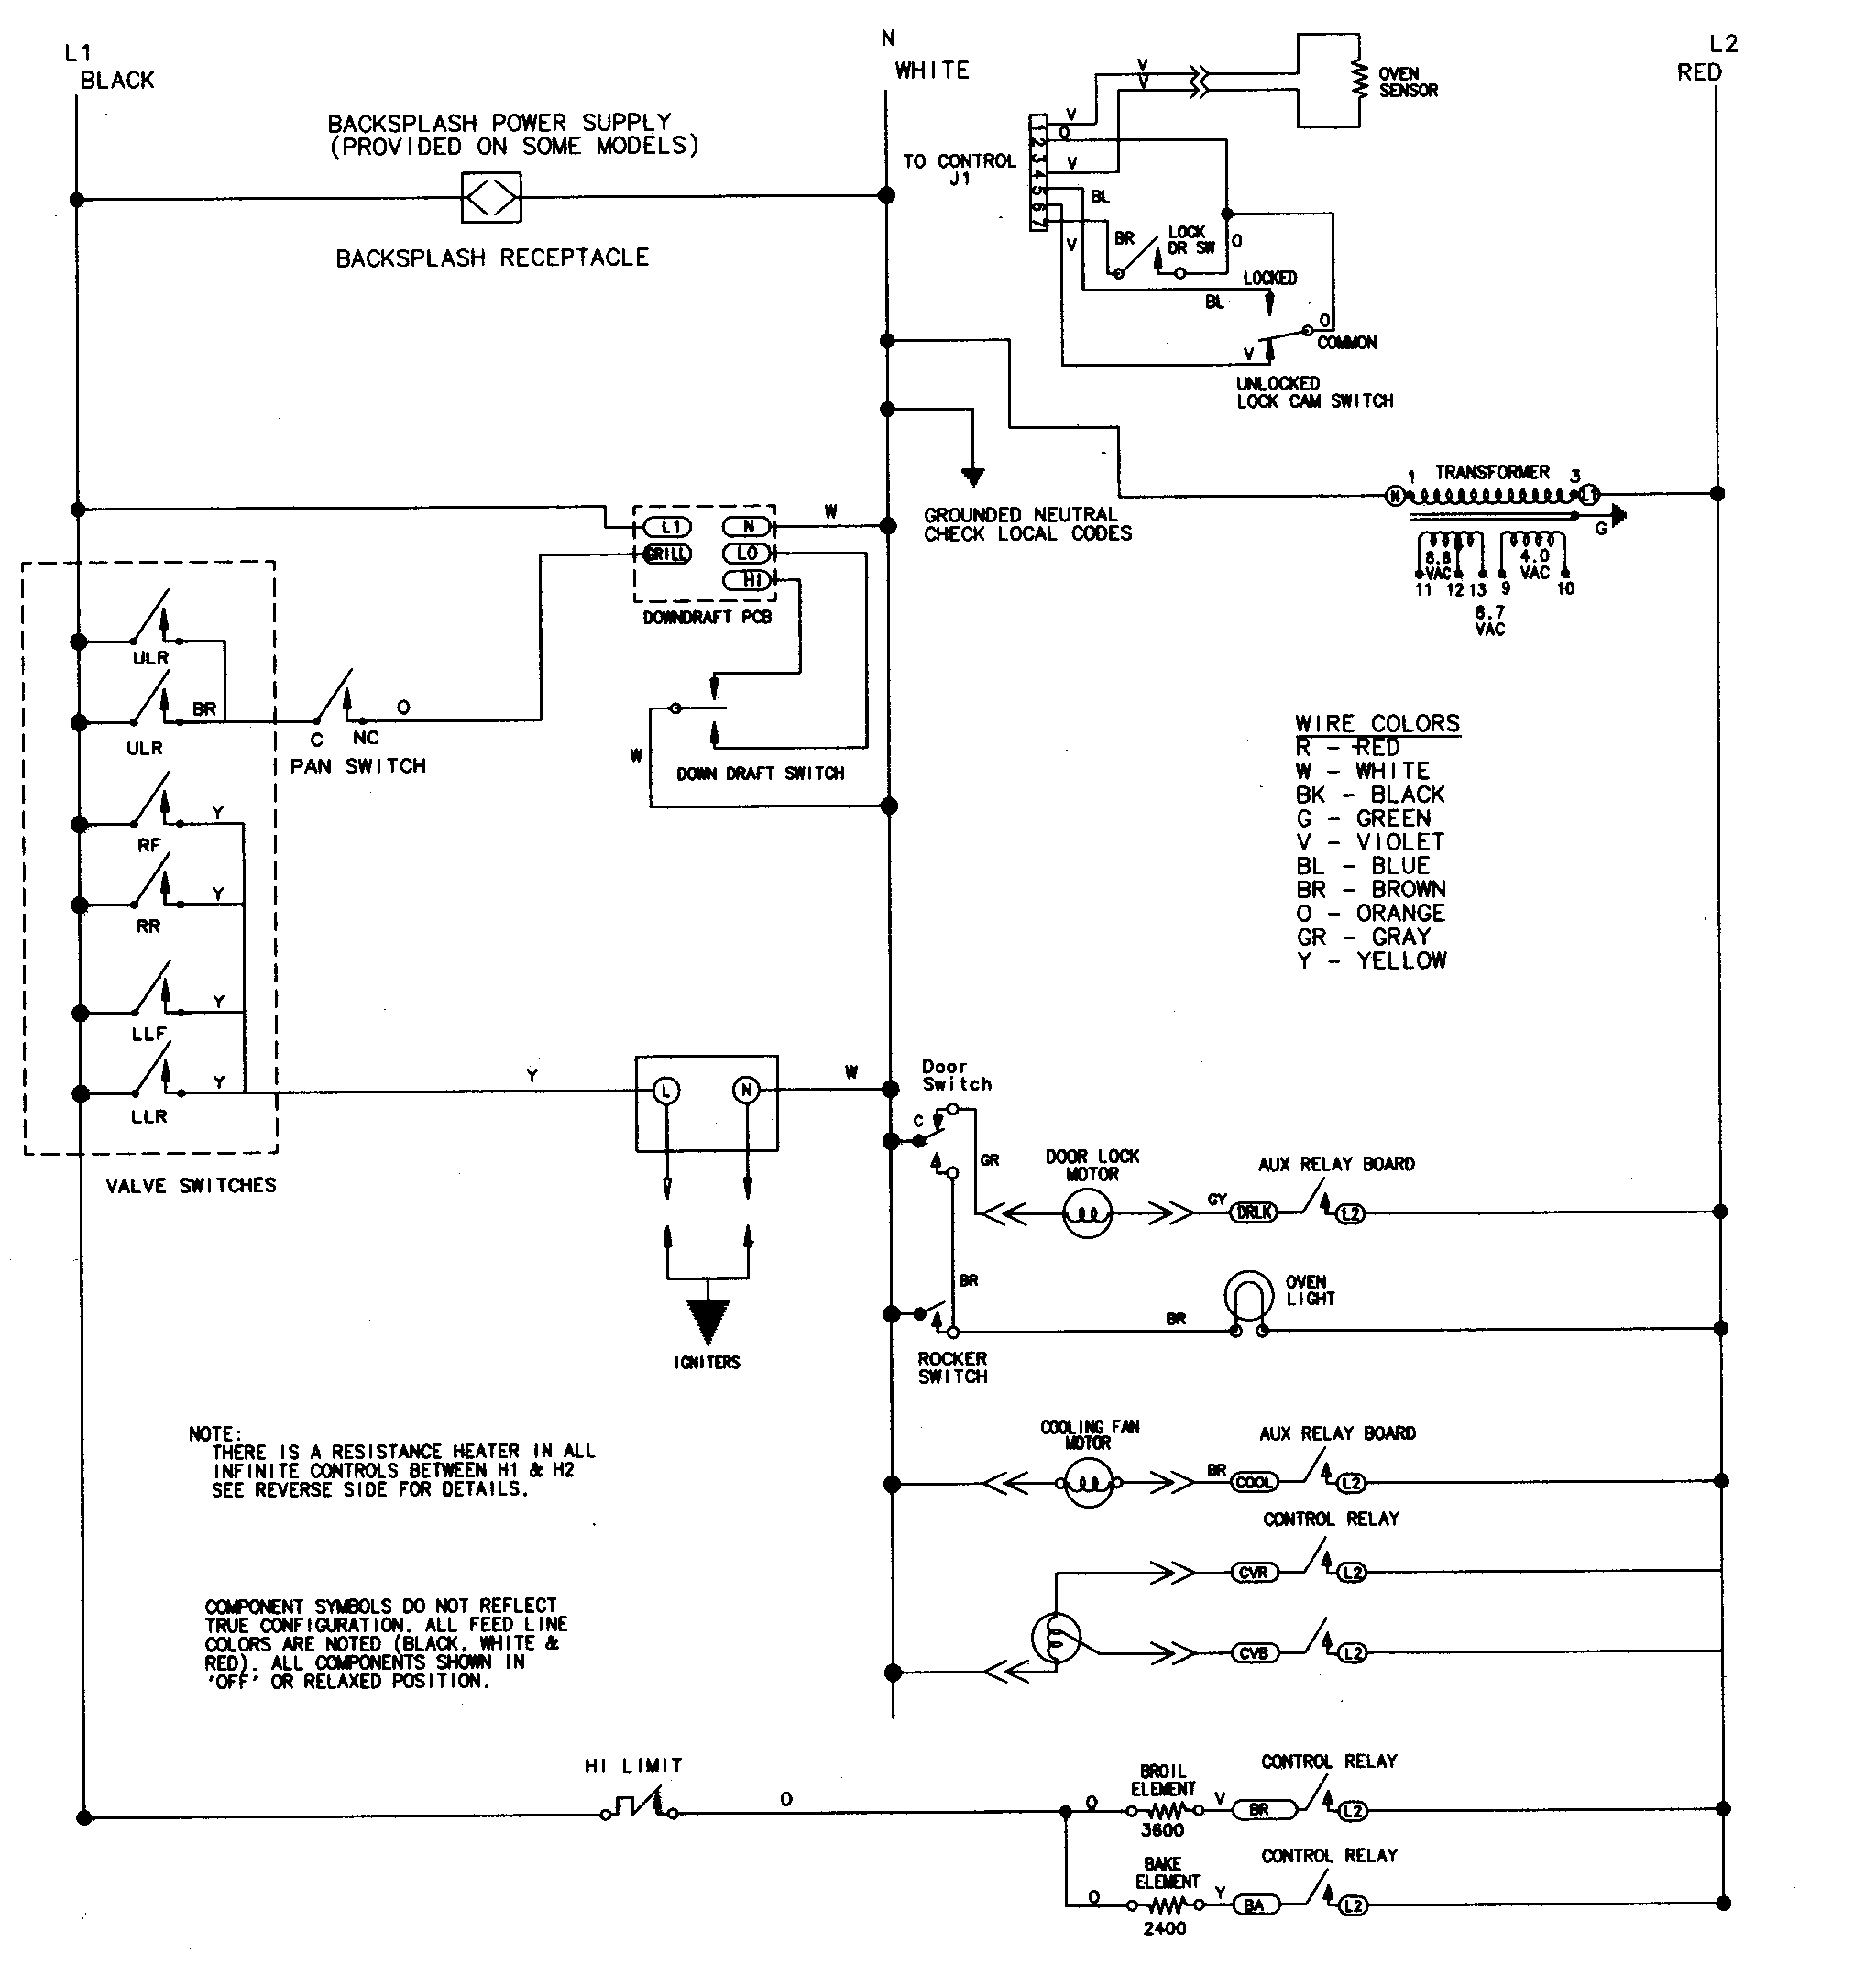 electric fireplace schematic and diagram get free image about wiring diagram